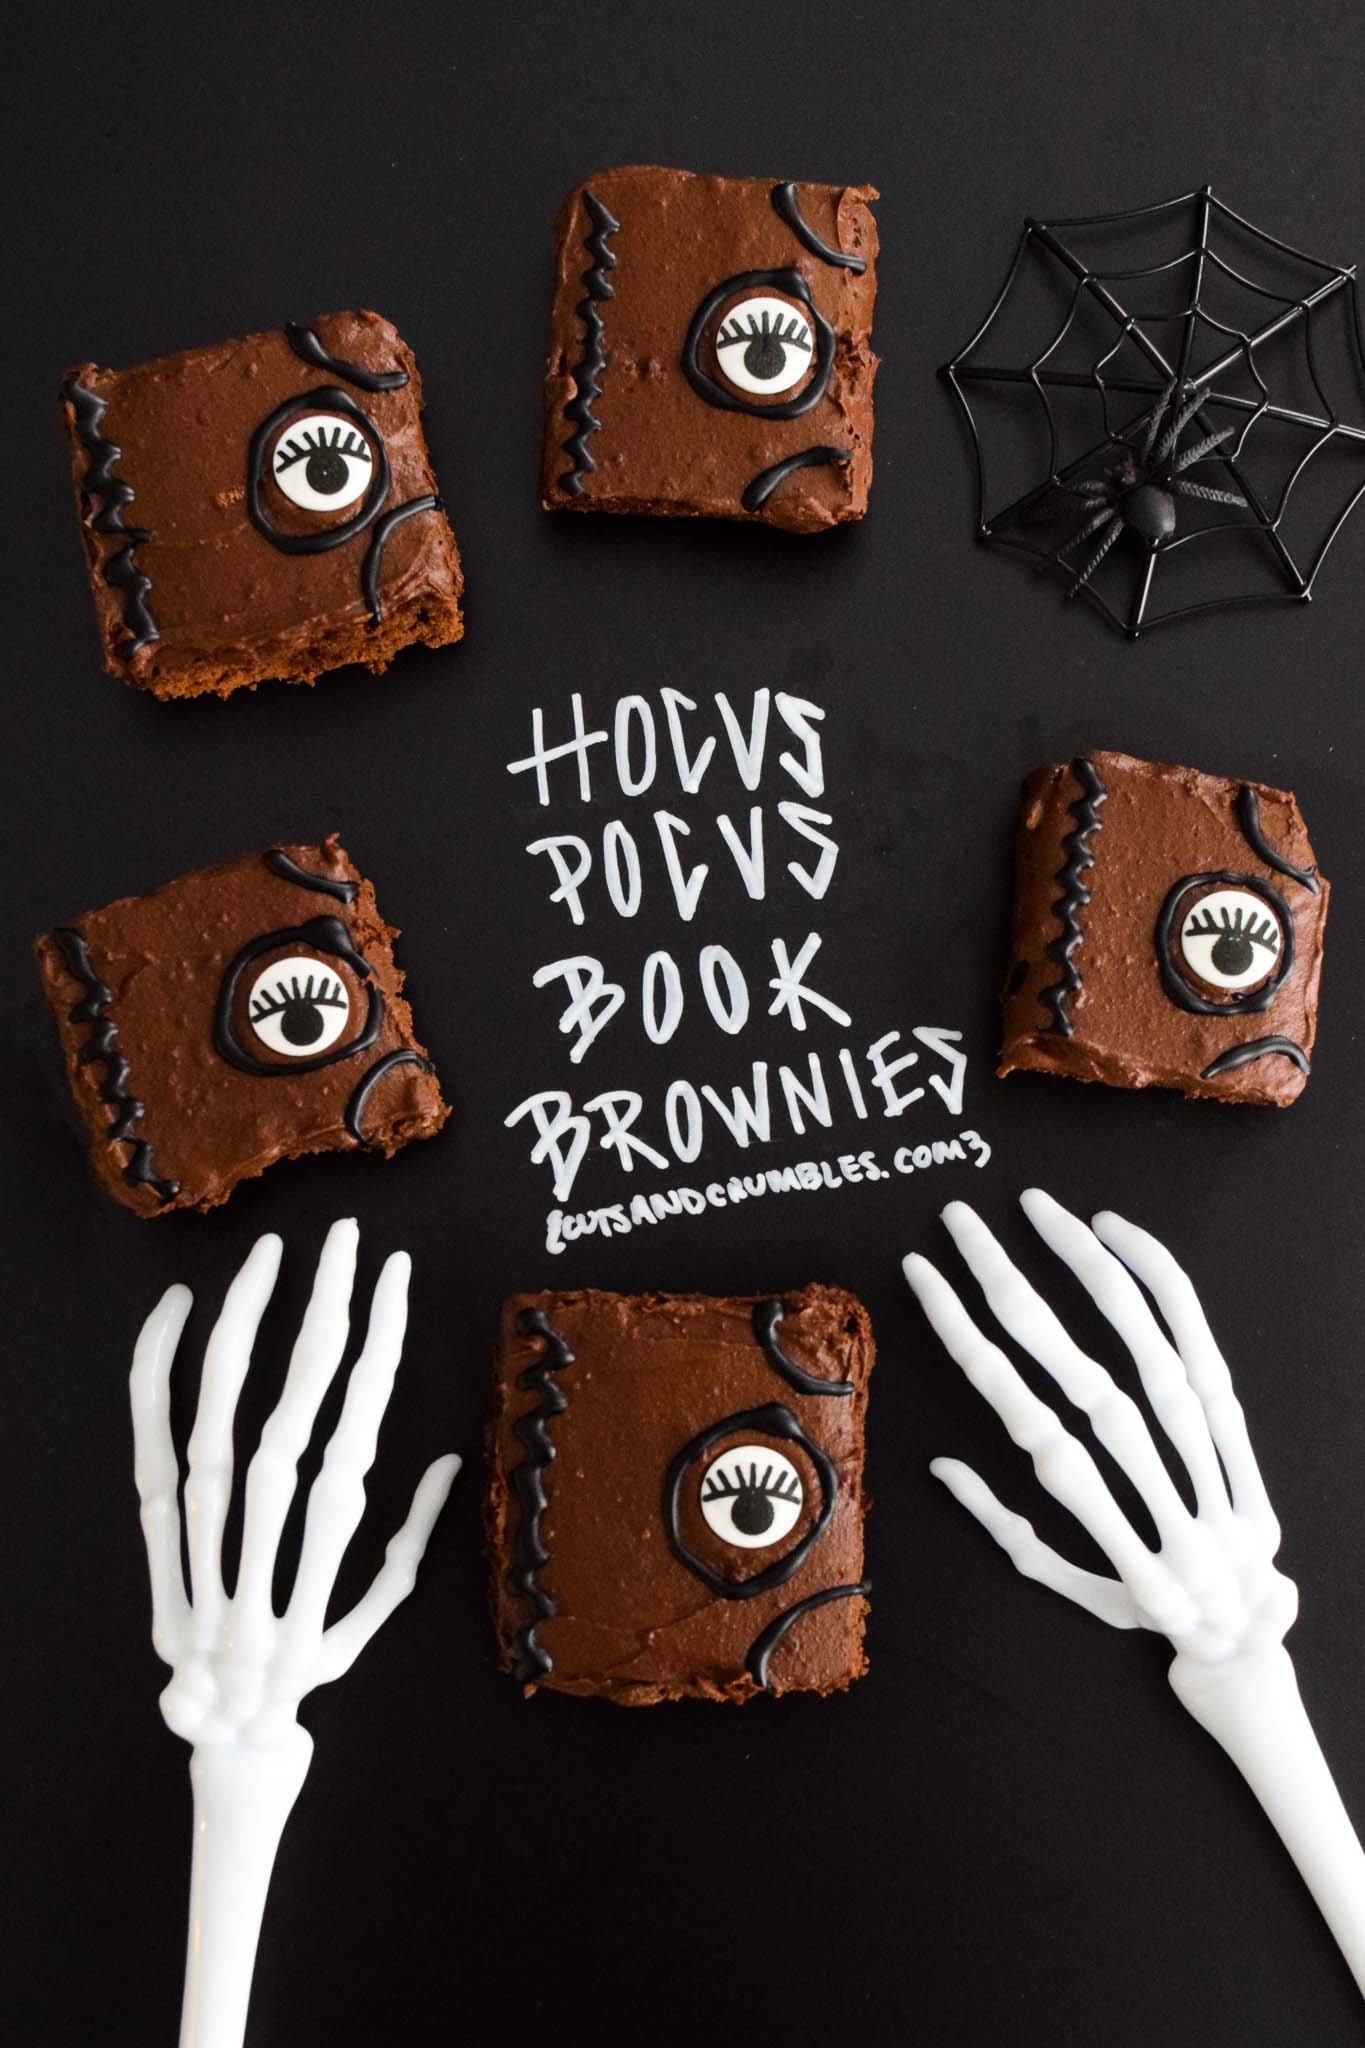 A fun and festive list of recipes to help you throw the best Halloween party! Some of our favorites are bloody red velvet poached pears, bourbon butterbeer, witchy caramel apples, oreo mummy pops, and halloween pizza potato skins!